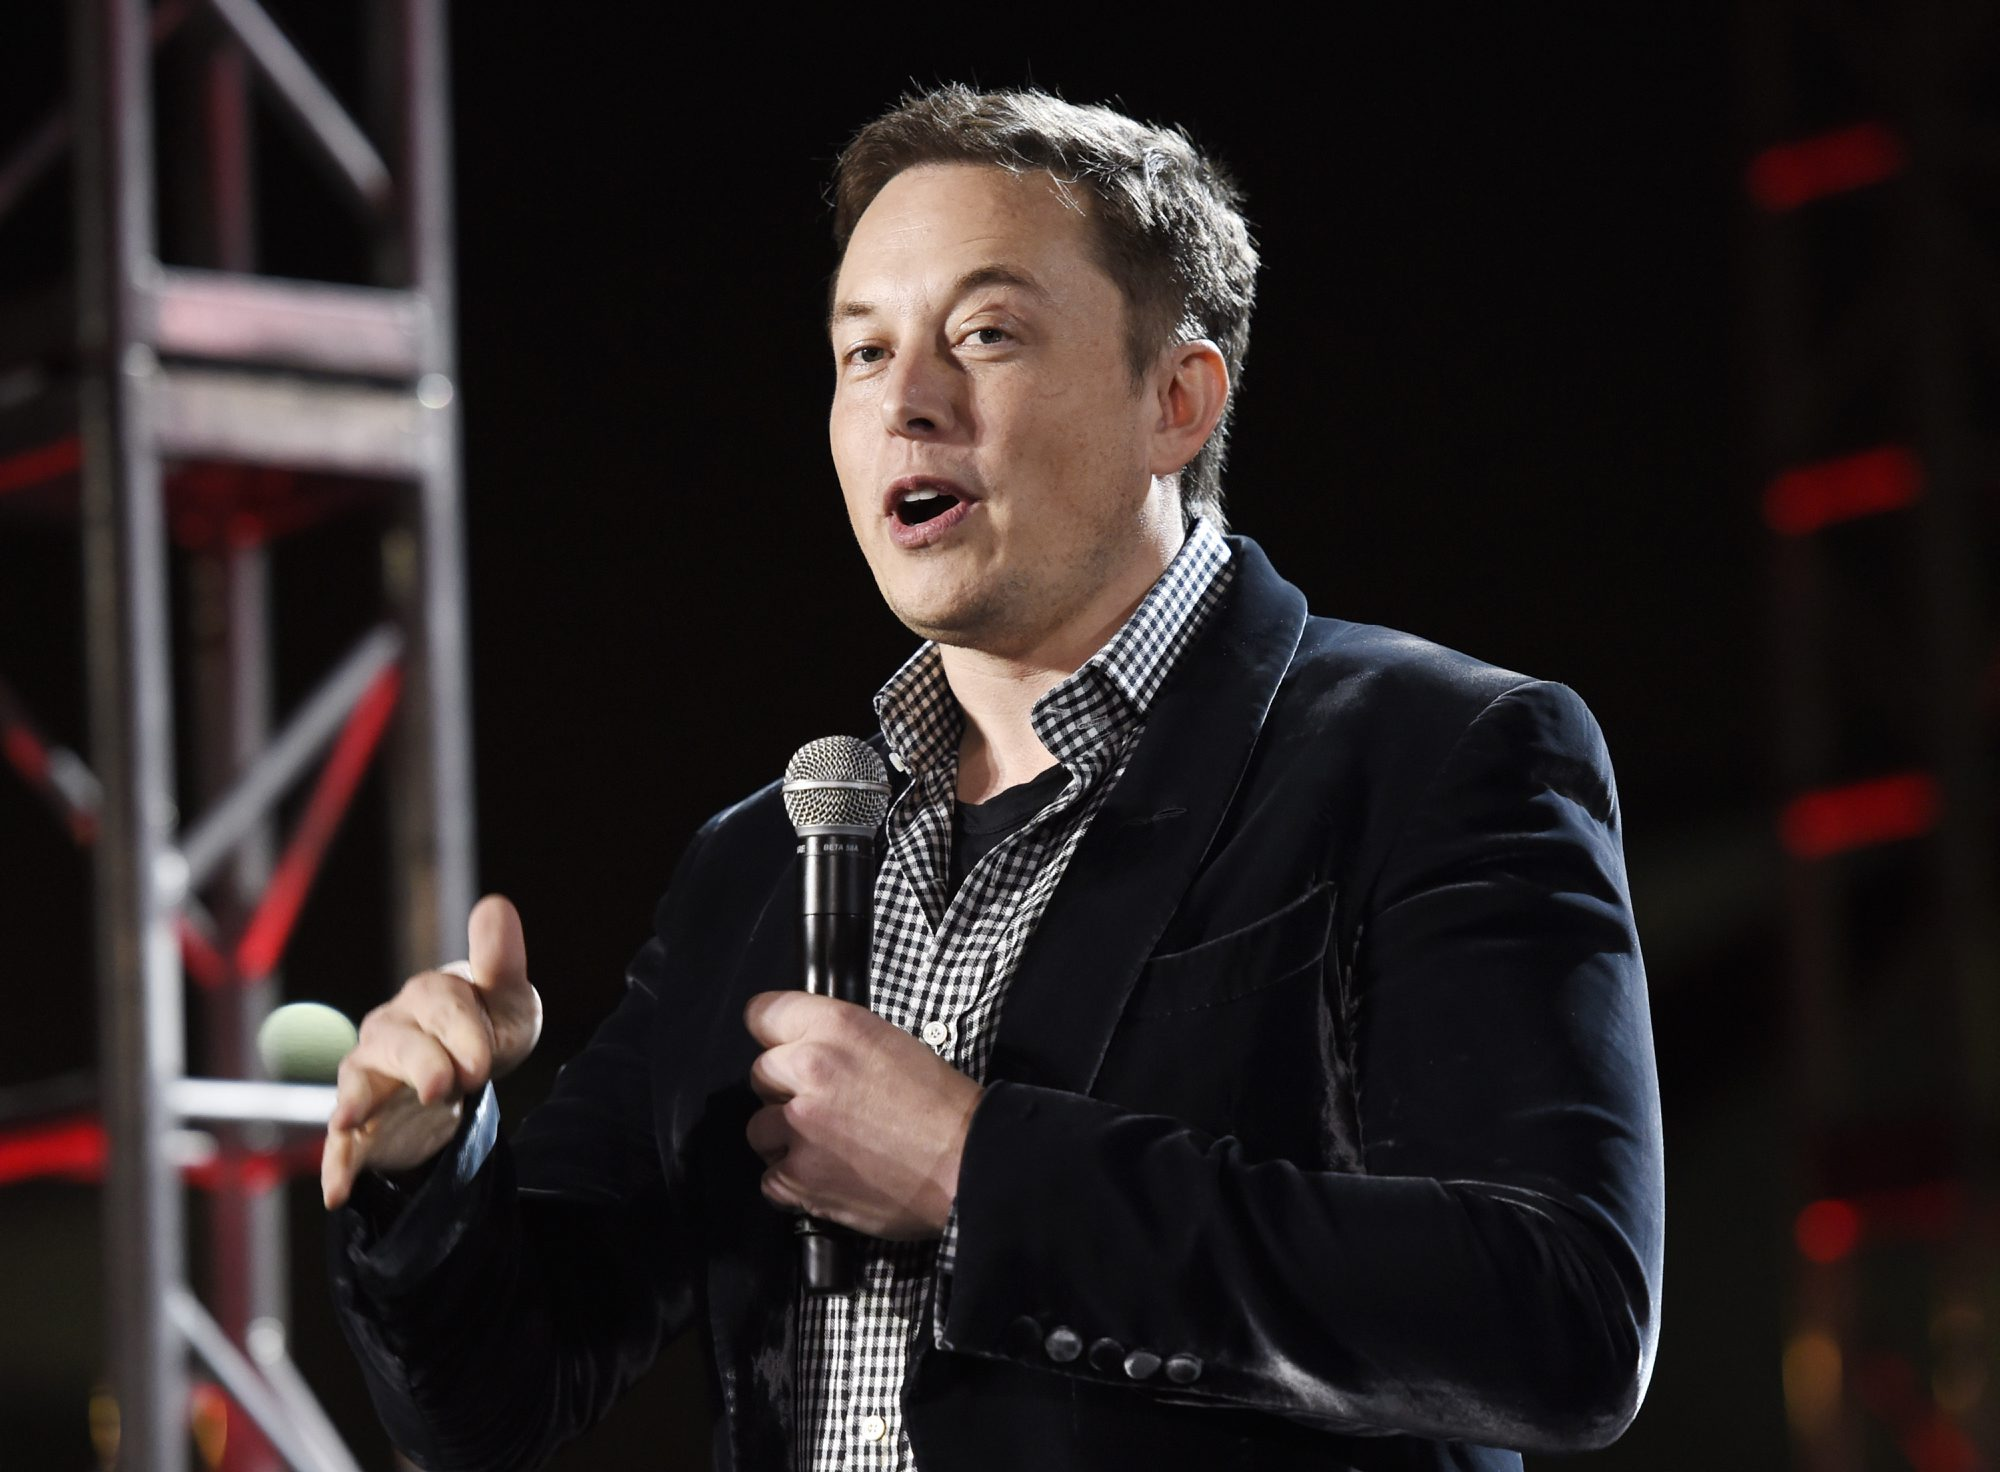 Tesla's Elon Musk is resigning as chairman of the Tesla board, but will remain as CEO. (Getty Images)